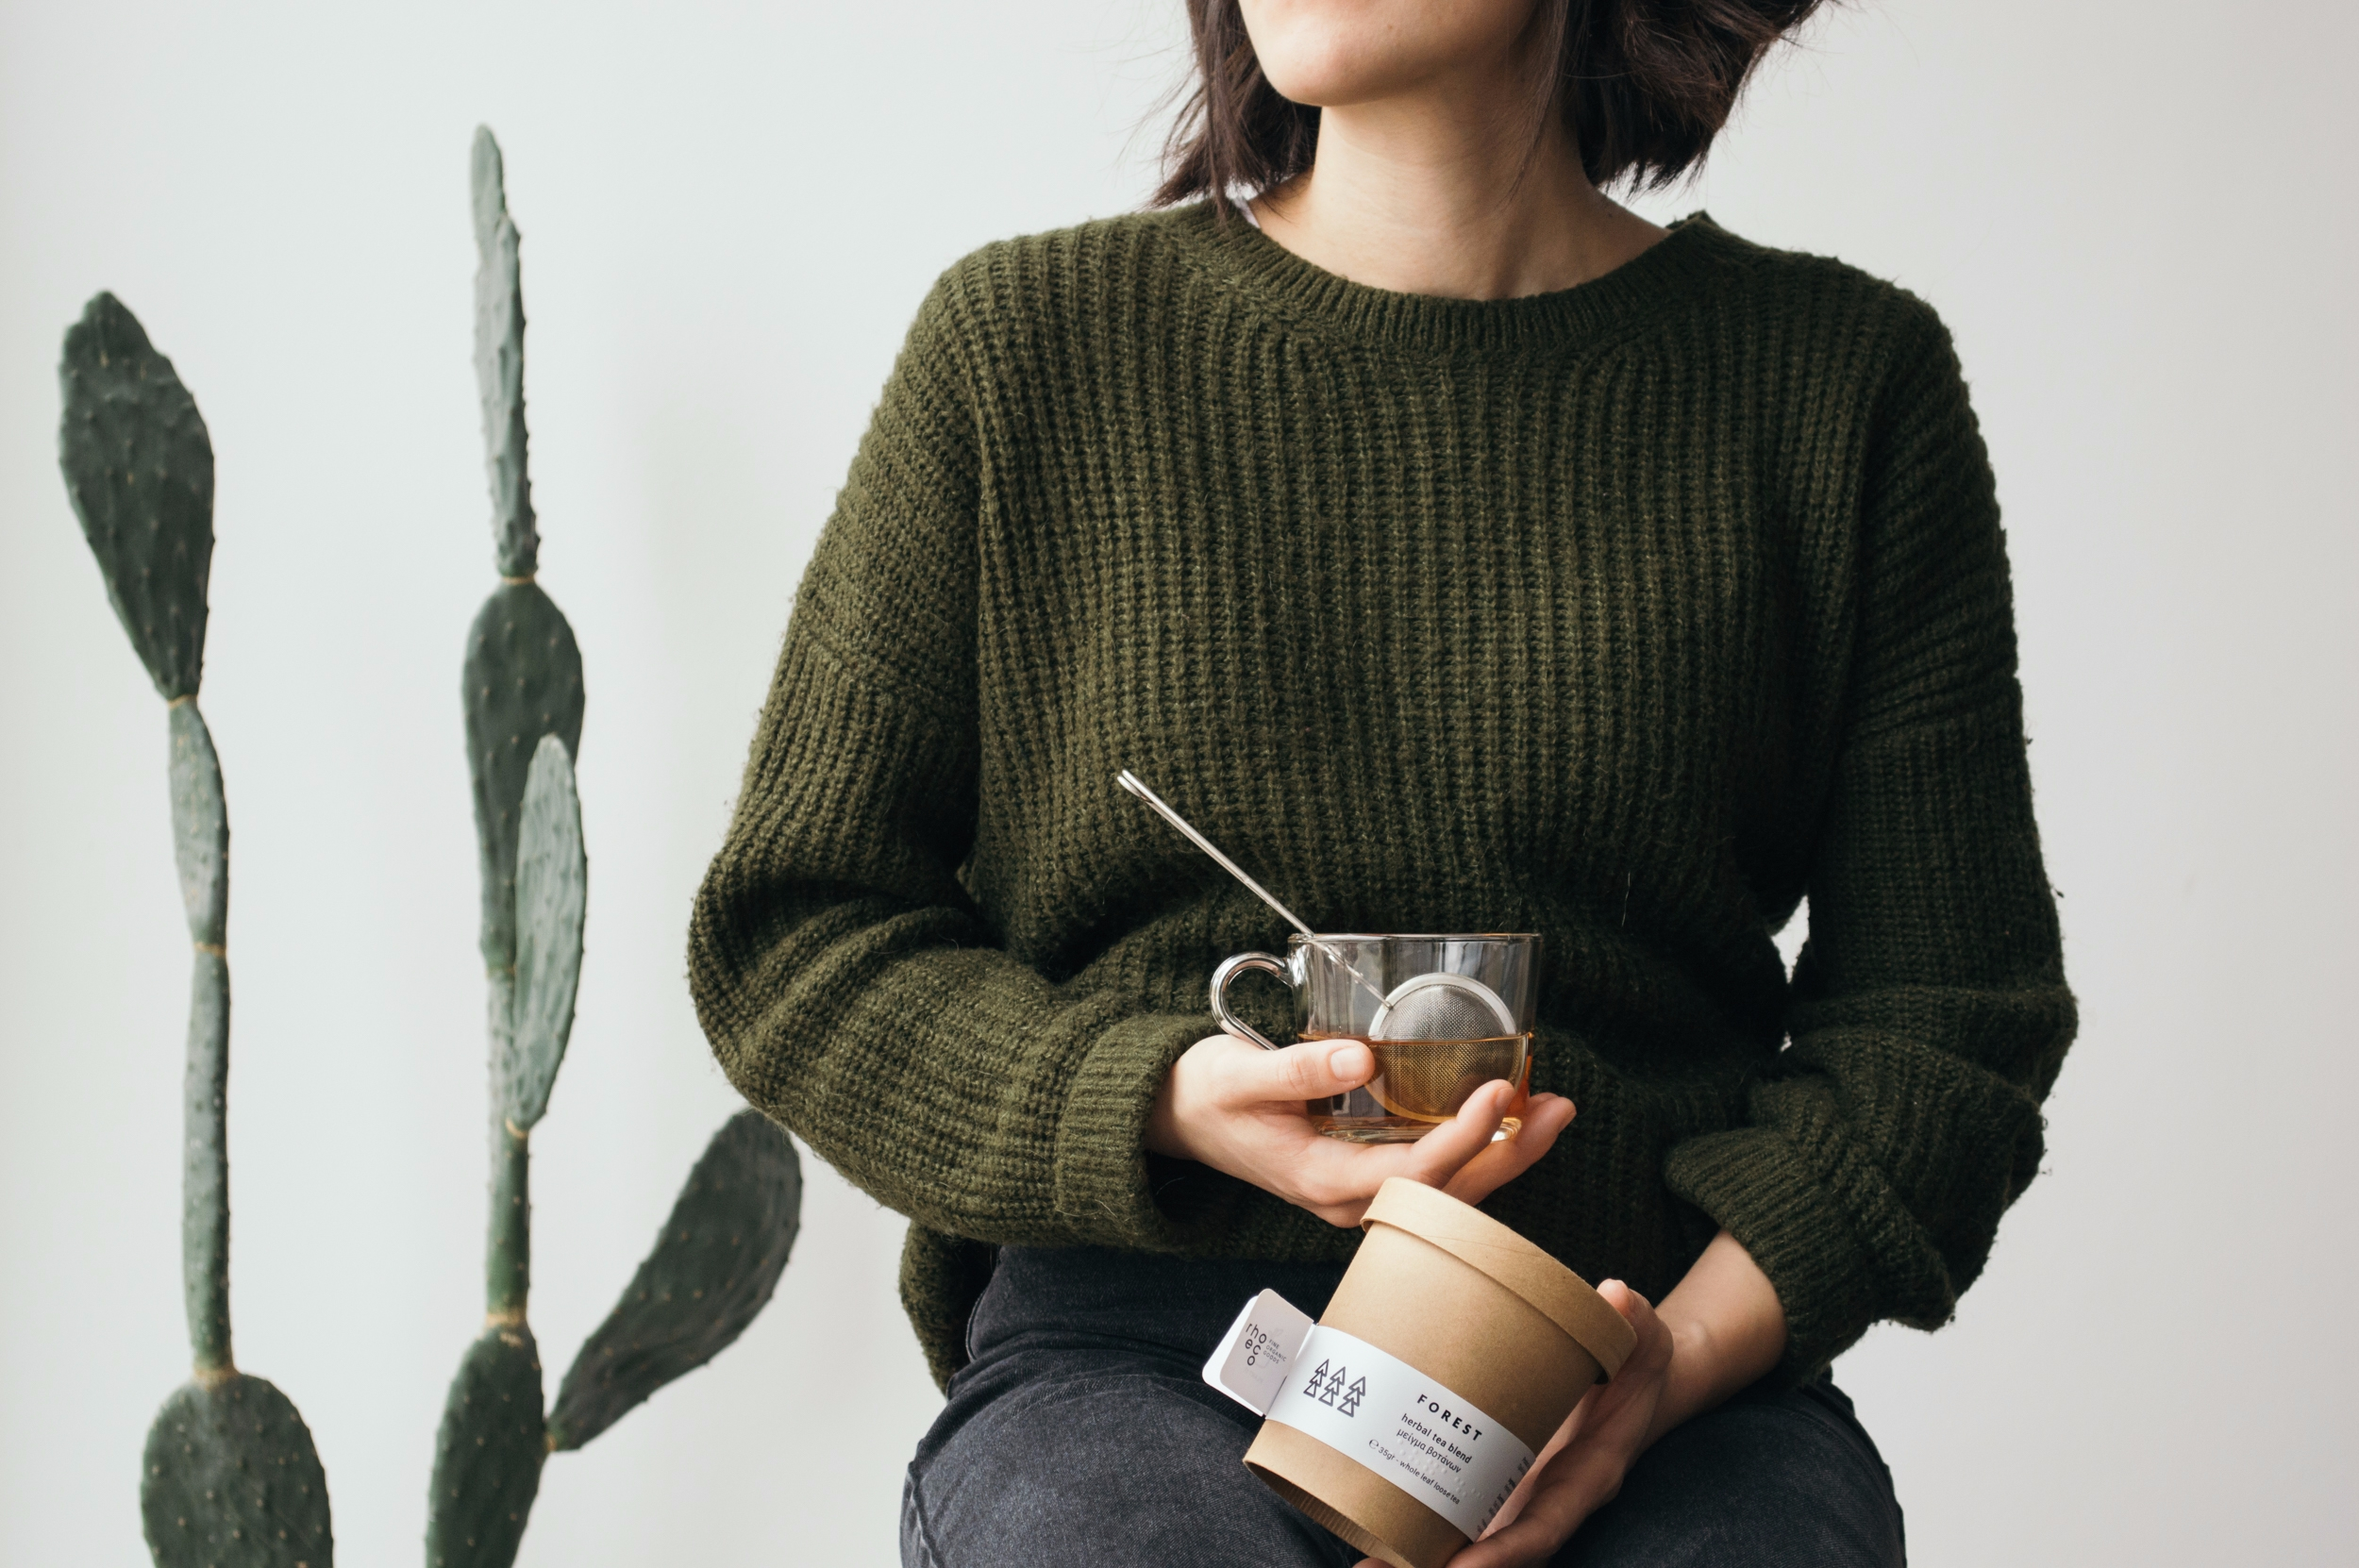 Gifts give Drink Plant  - giftidea - rhoeco_fineorganicgoods | ello